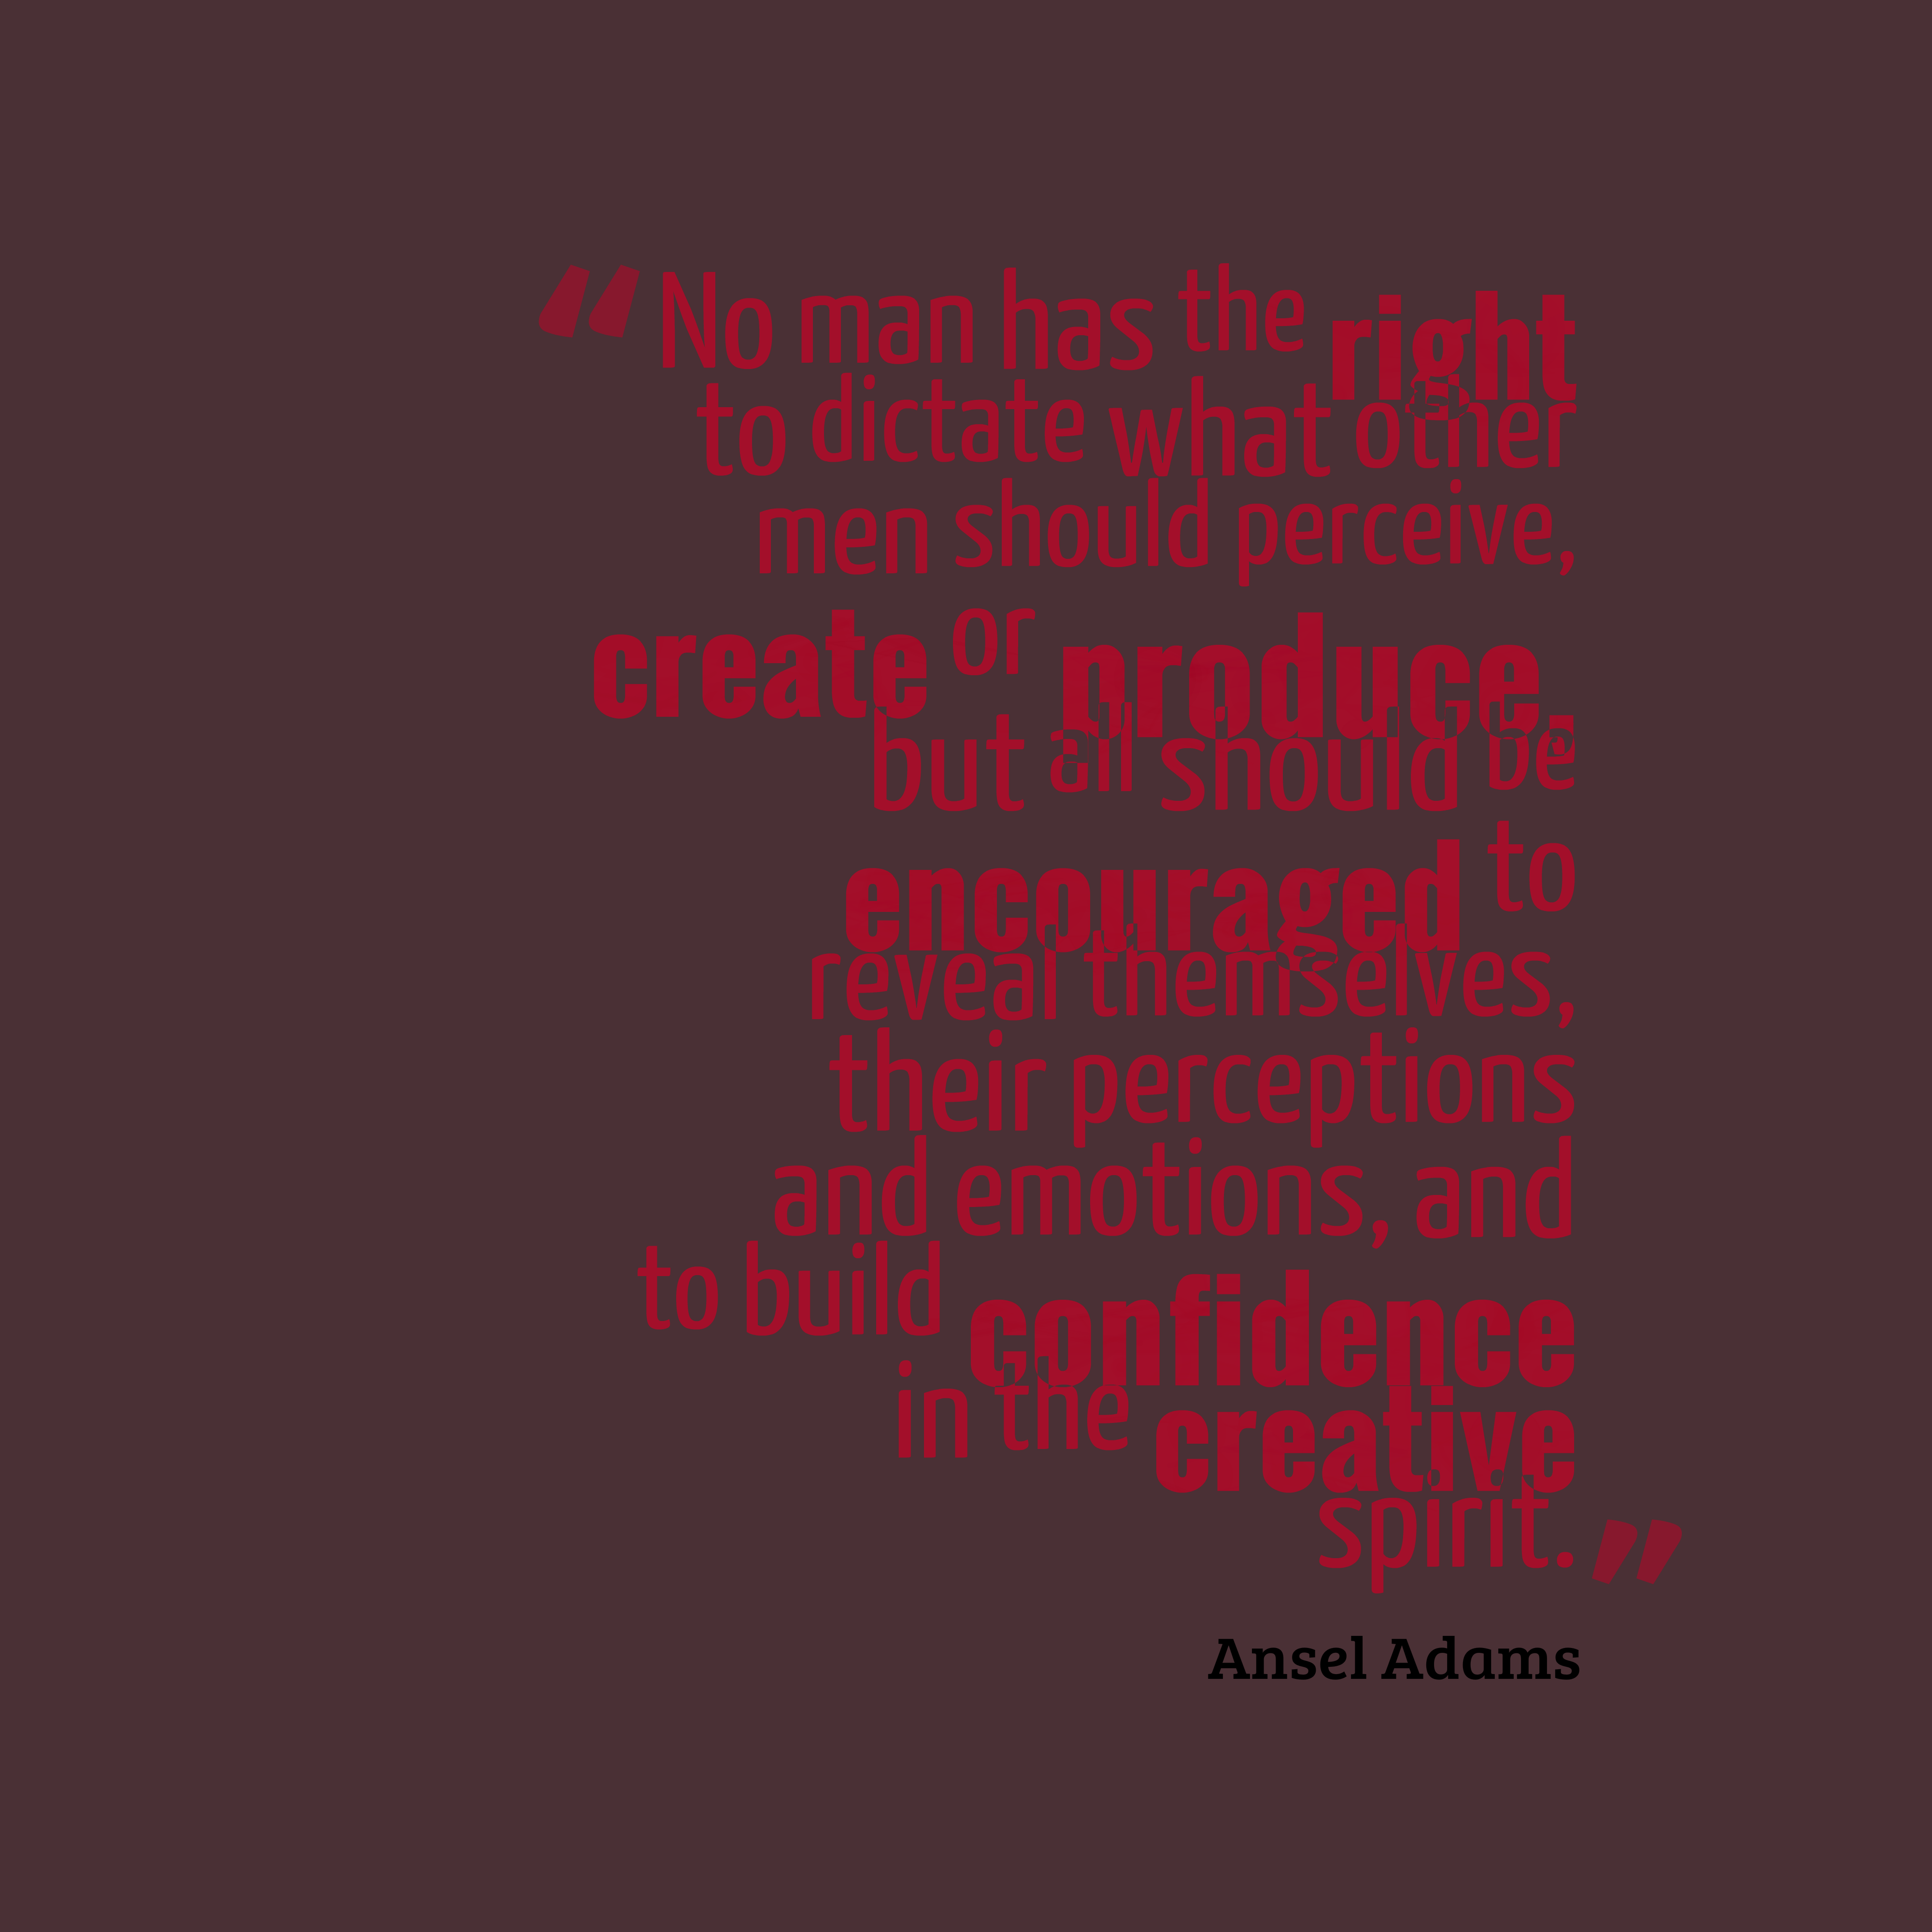 Quotes image of No man has the right to dictate what other men should perceive, create or produce, but all should be encouraged to reveal themselves, their perceptions and emotions, and to build confidence in the creative spirit.